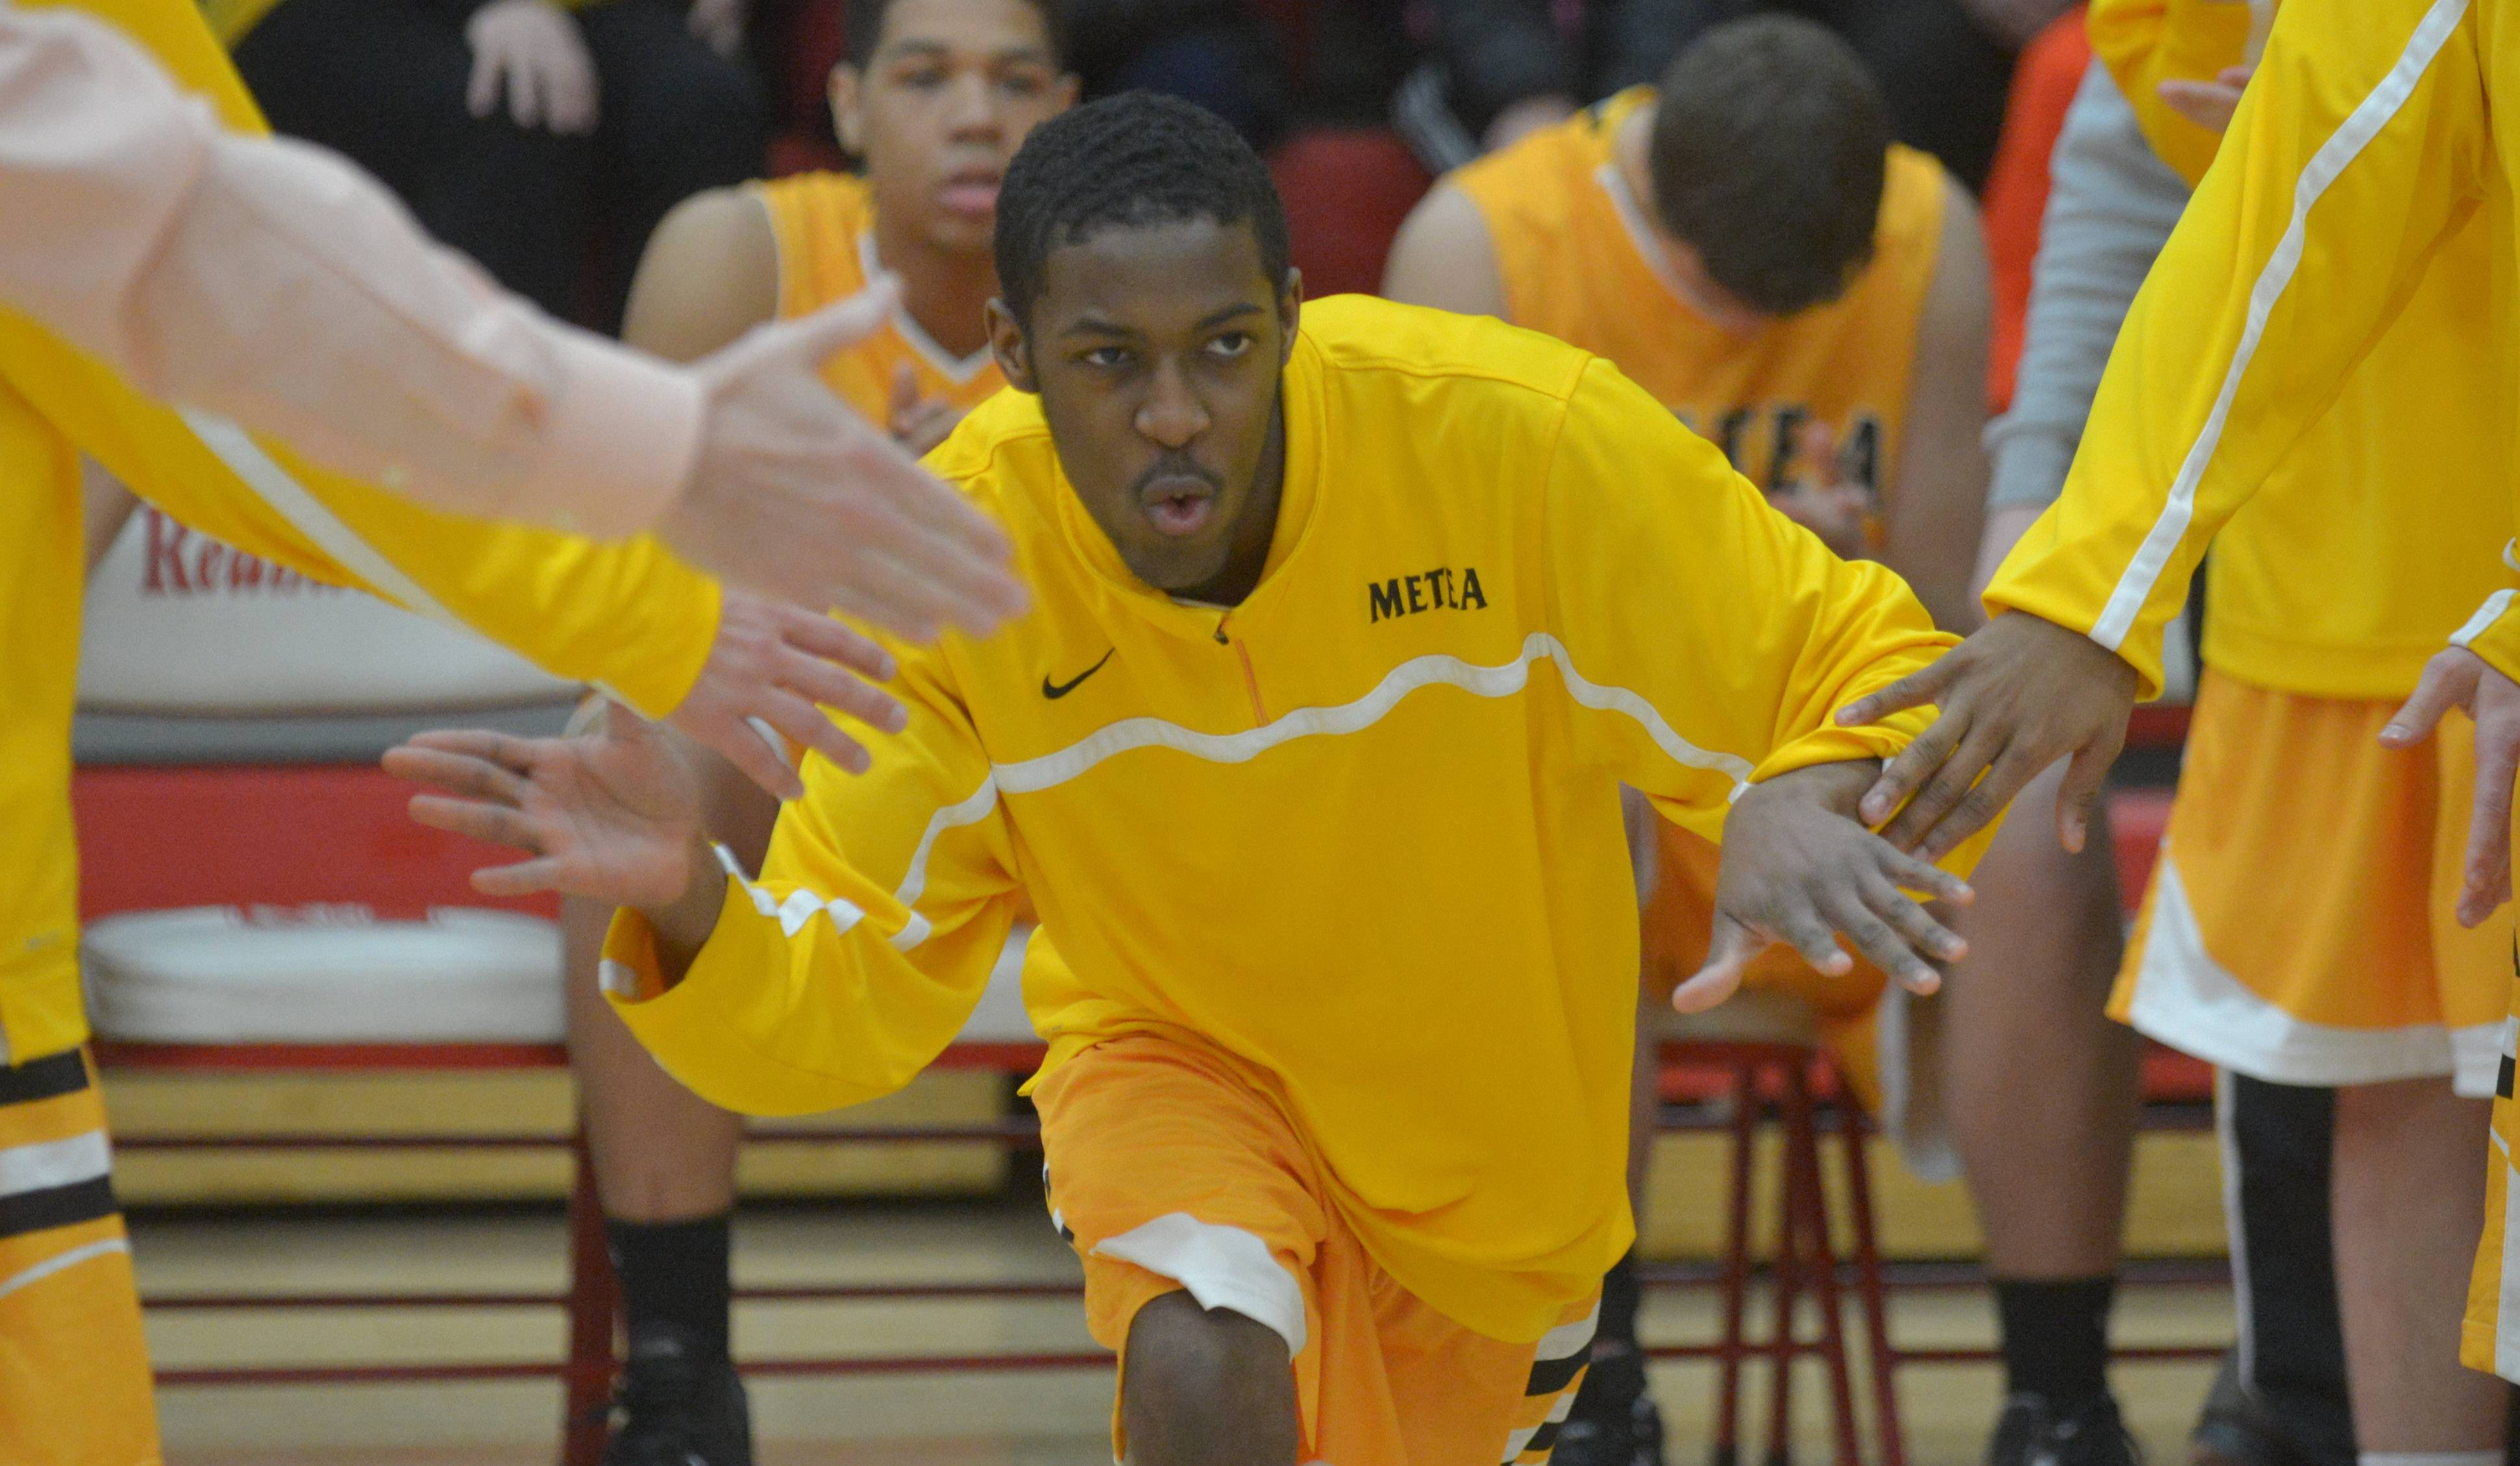 Images: Metea Valley vs. Naperville Central boys basketball